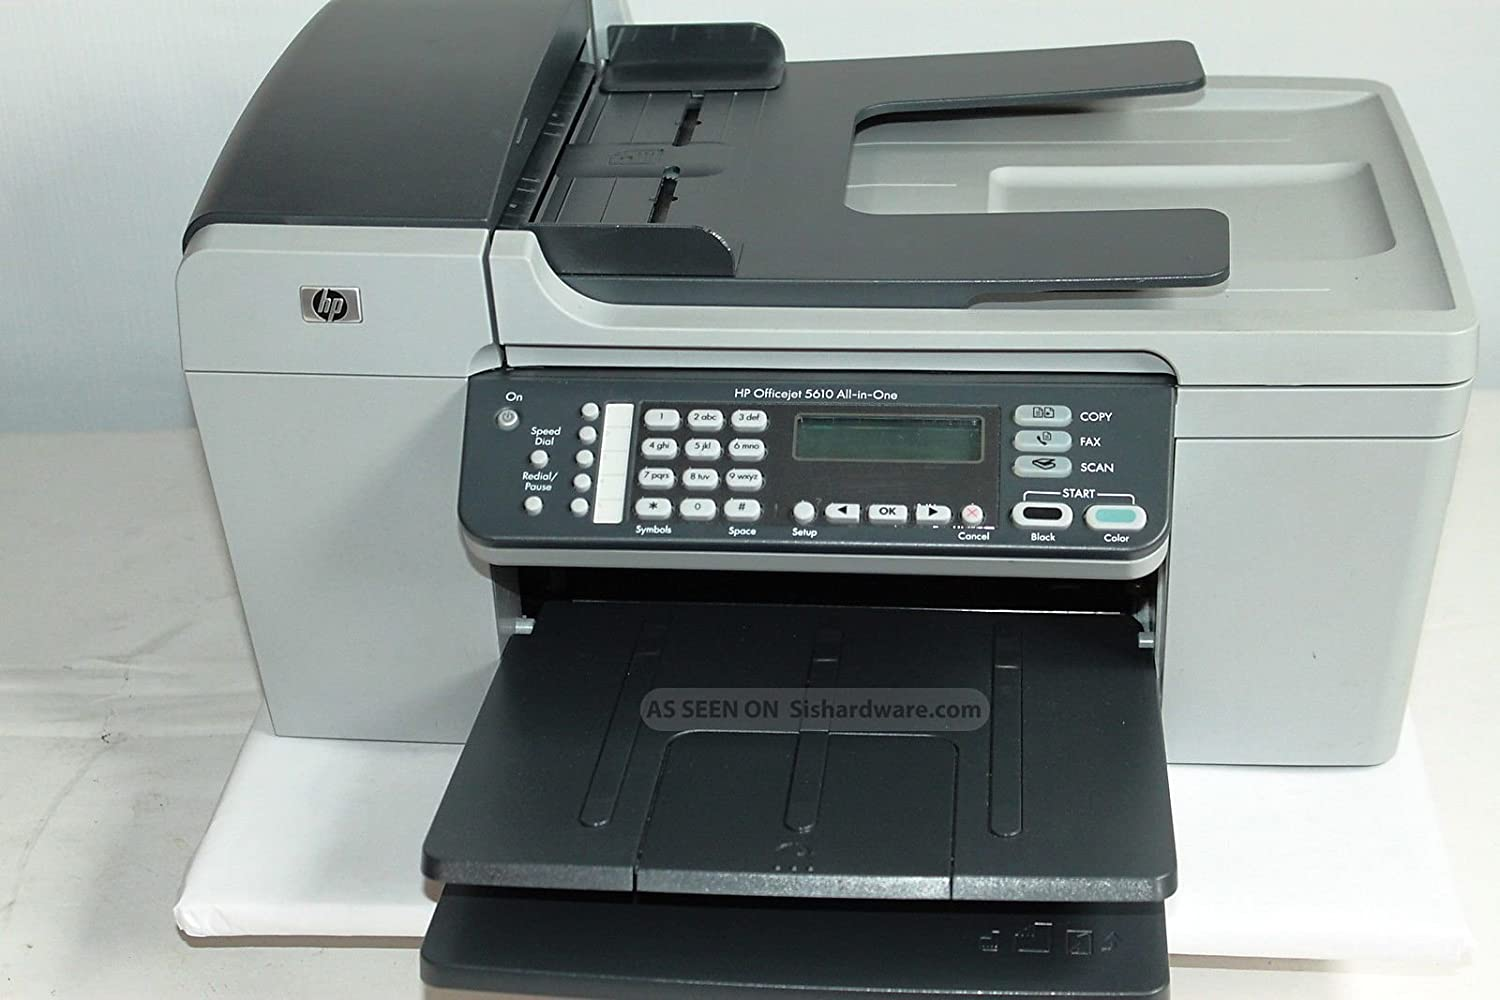 Download) HP Officejet Pro L7780 All-in-One Printer Driver Download Guide